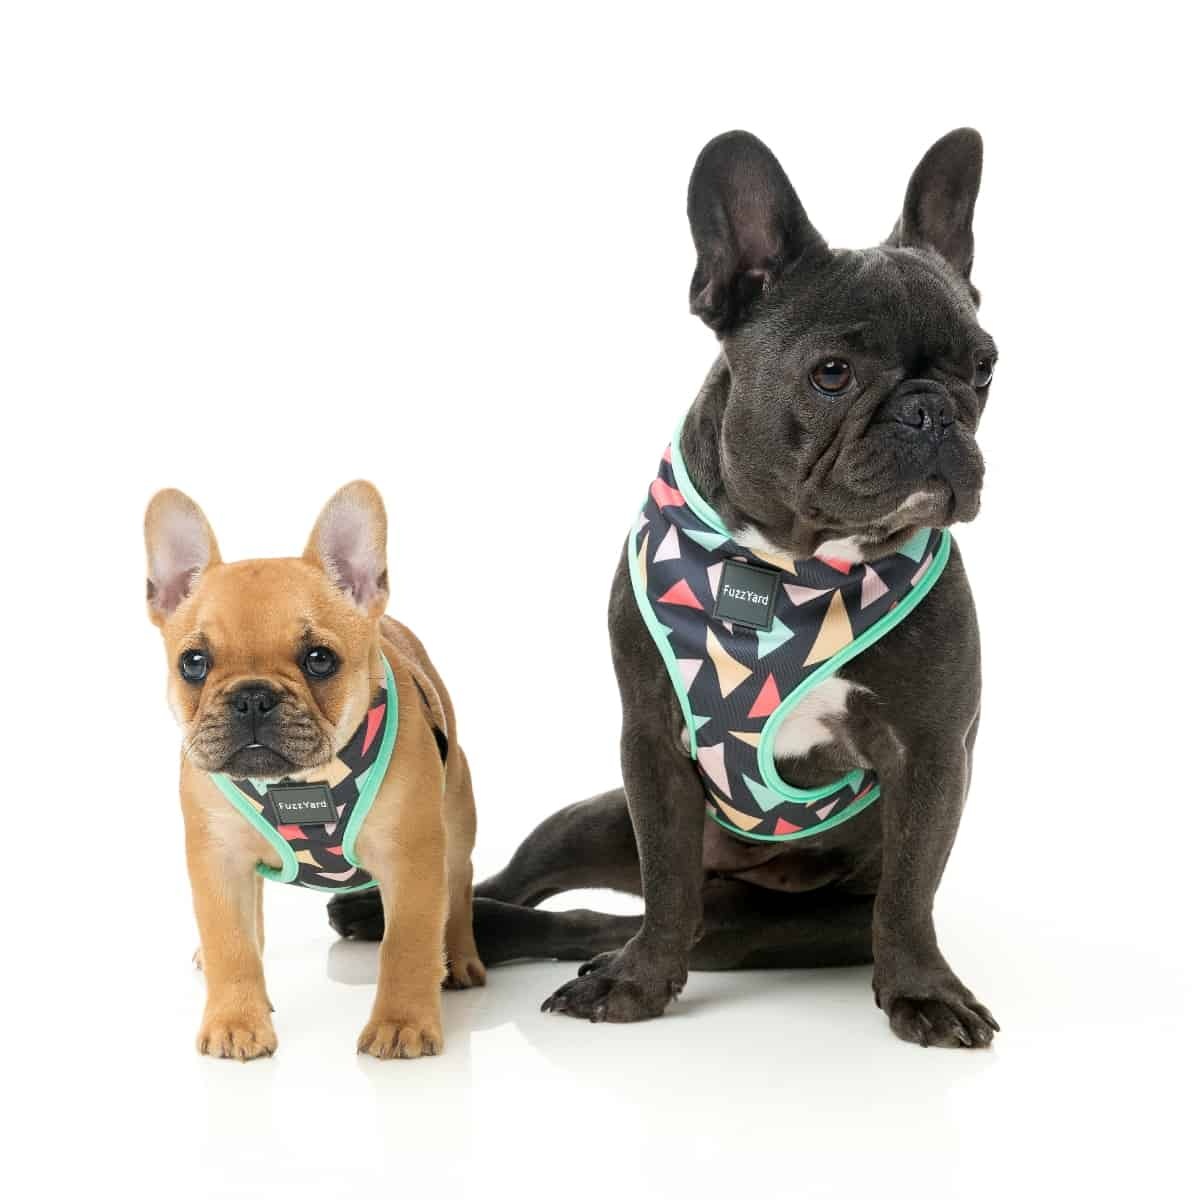 pets at home dog harness instructions